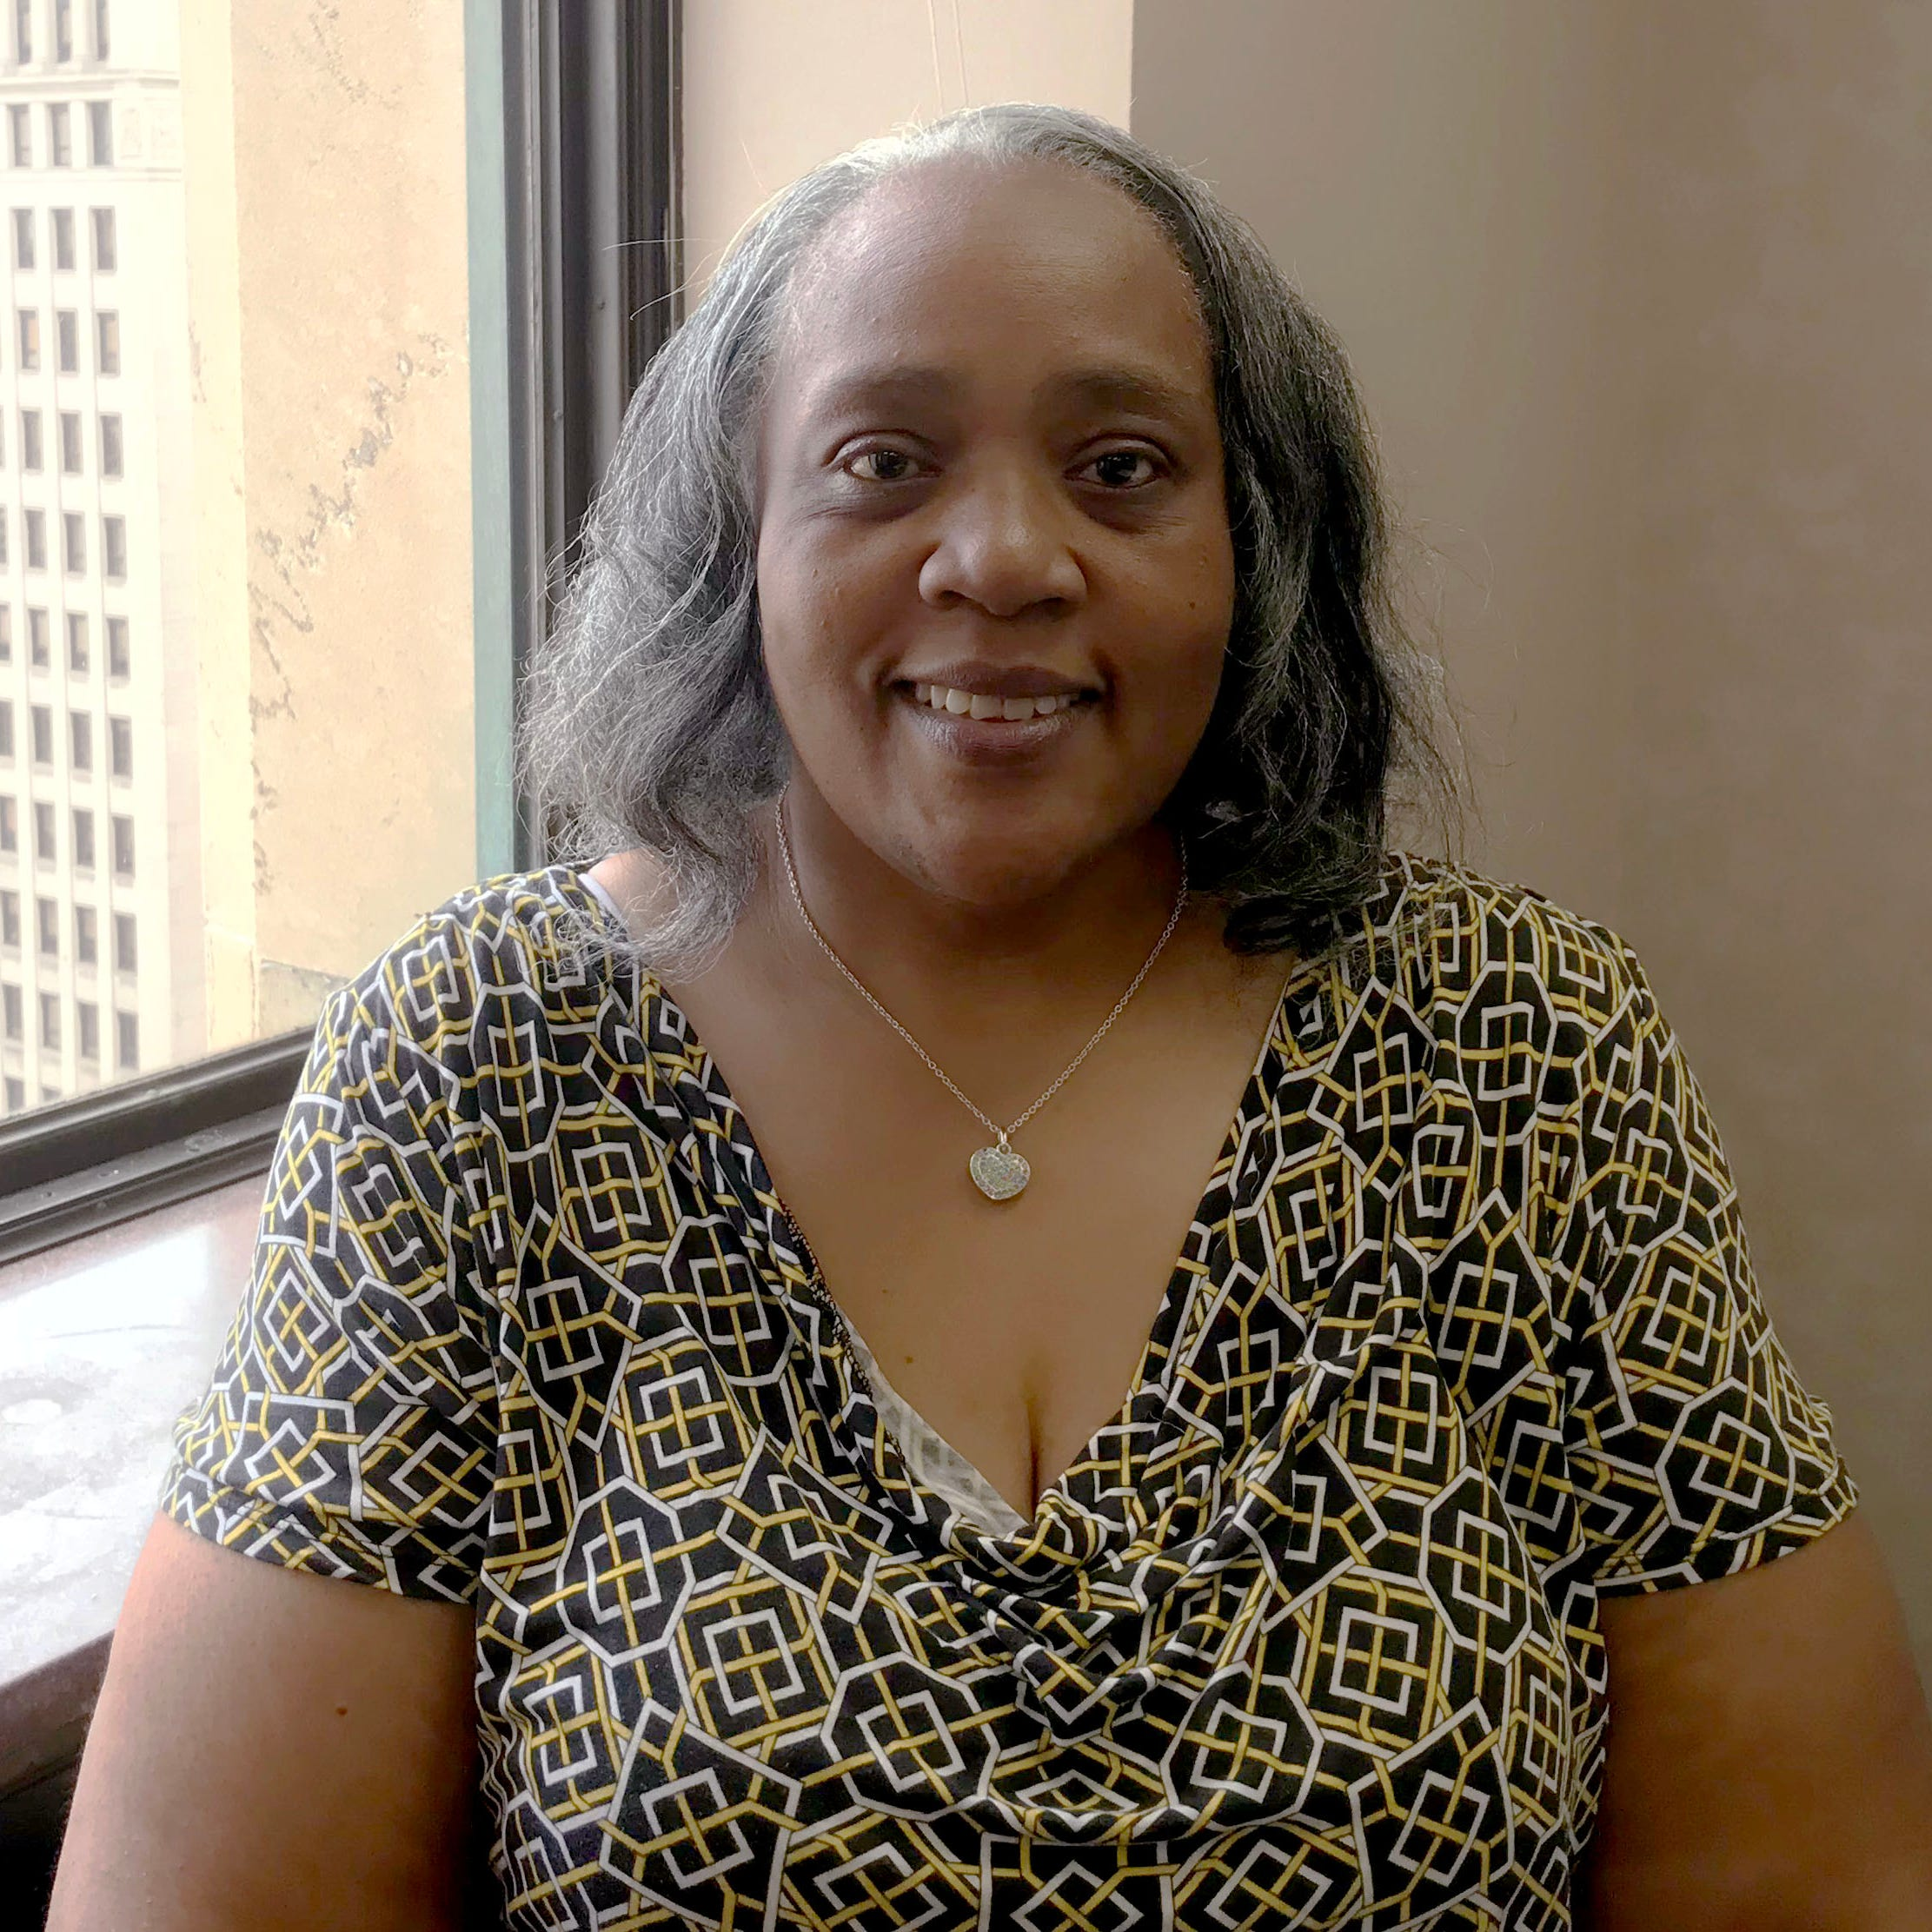 Betty Jean Alexander, who unseated a veteran state lawmaker in the 5th Senate District race Tuesday, August 7, is shown in this photo taken Saturday, Aug. 11, 2018 in the Fisher Building in Detroit.